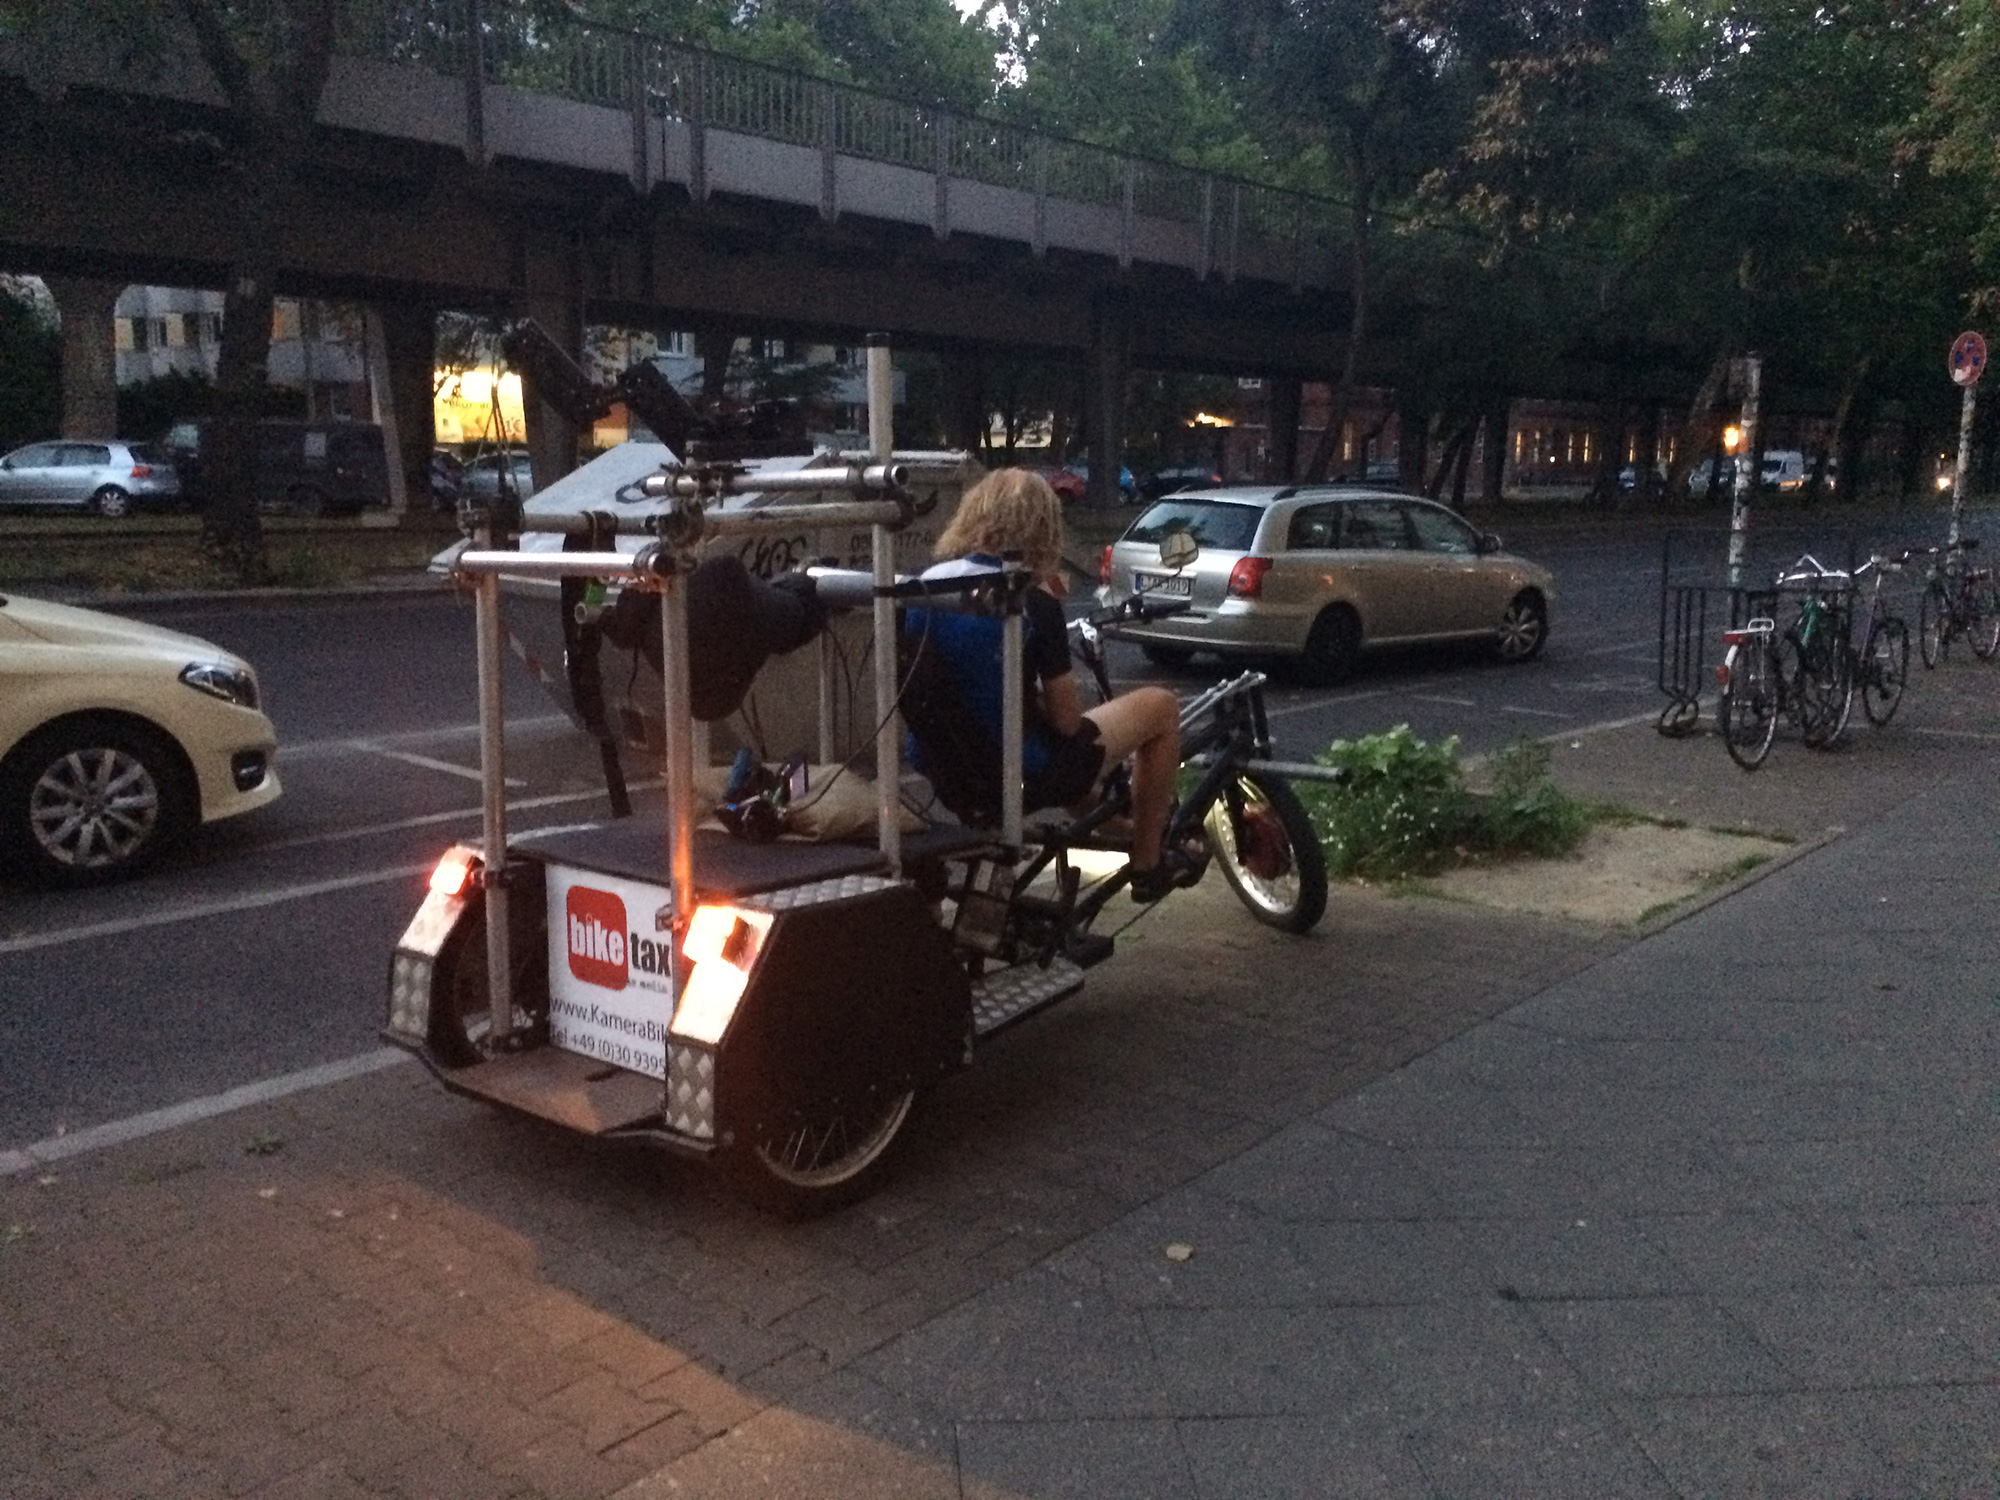 The infamous camera rickshaw near the Berlin U-Bahn.